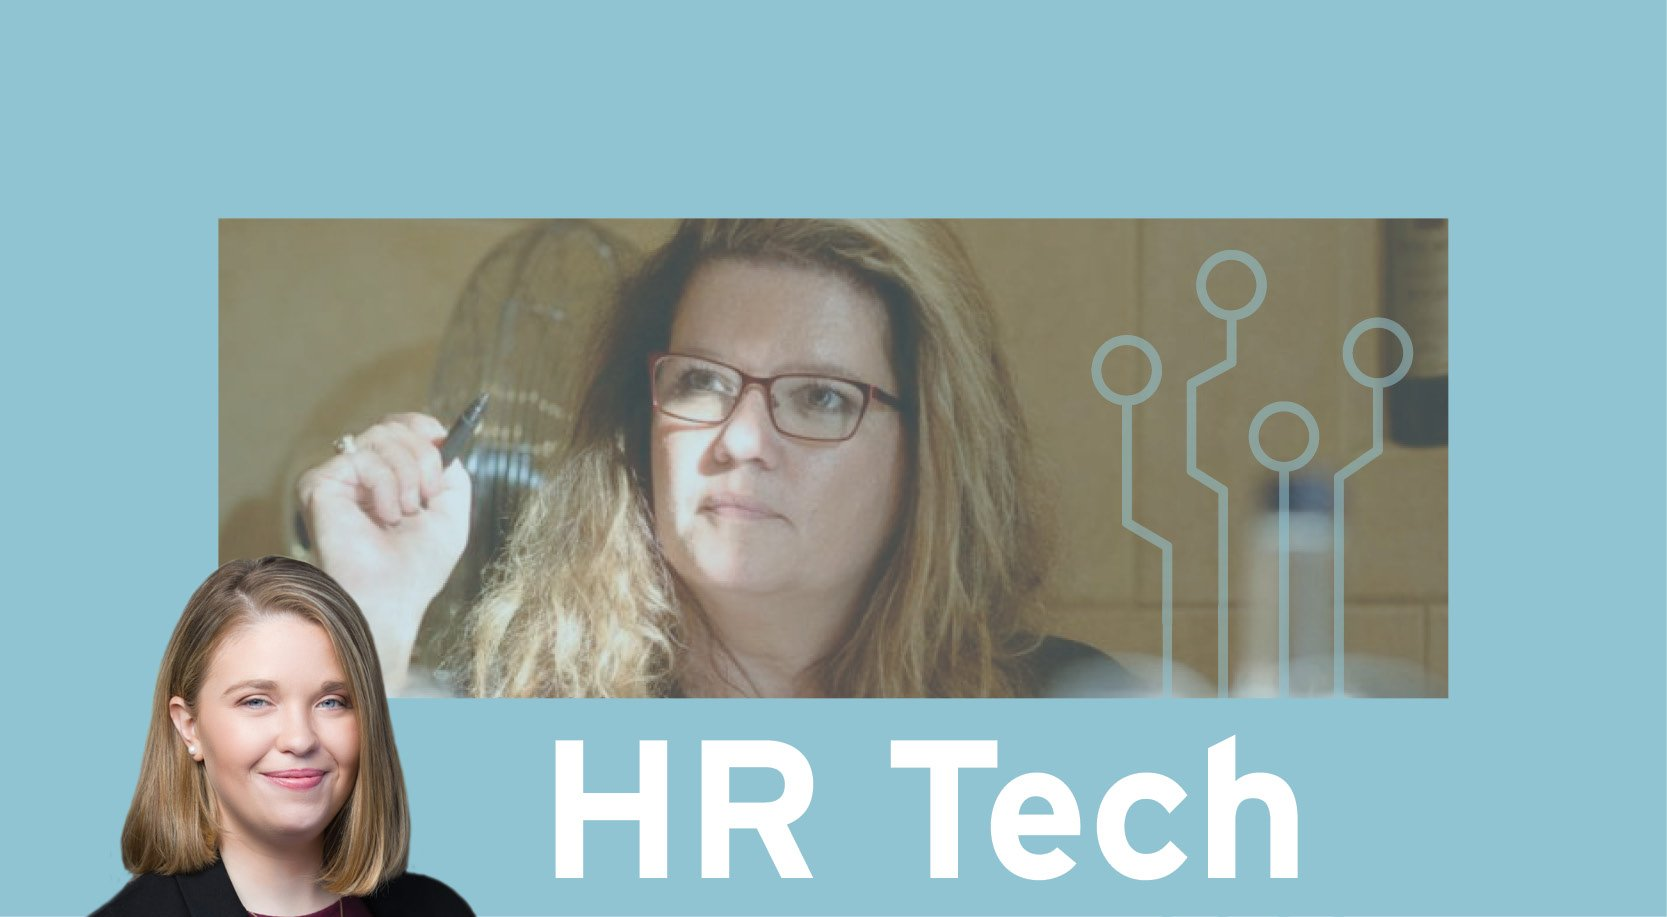 #HRtech: Meet Angela Hood and Her Quest for Removing Bias